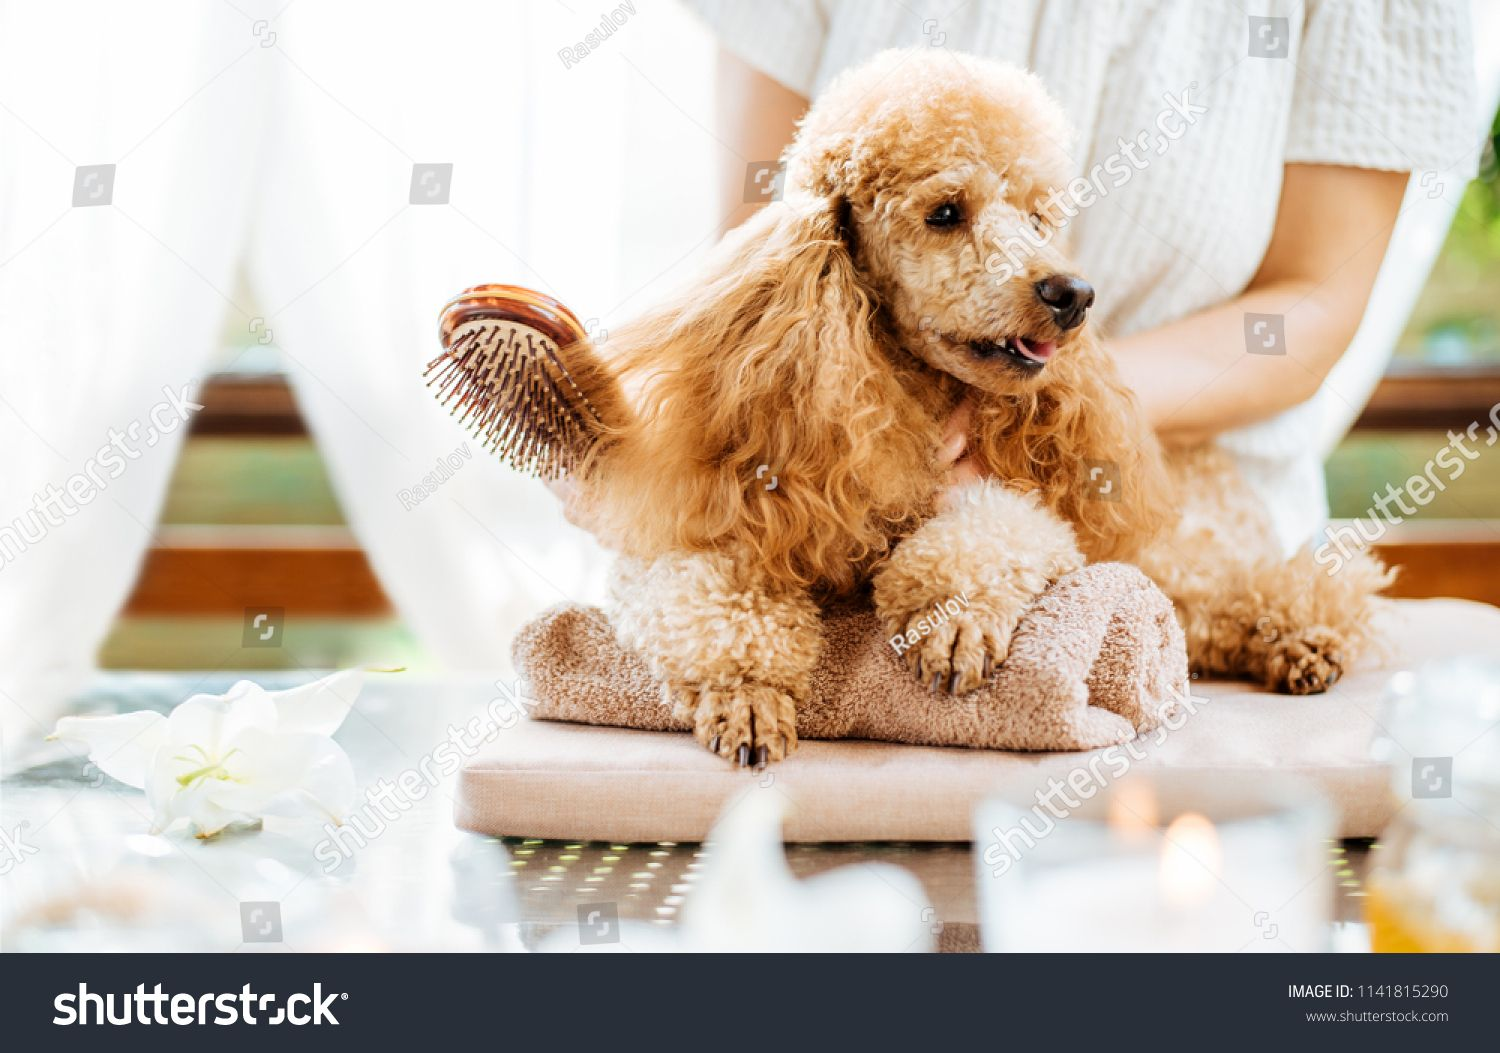 Woman Scratching Dog With A Brush Spa Still Life With Aromatic Candles Flowers And Towel Brush Spa Dog Woman Still Life Dogs Spa